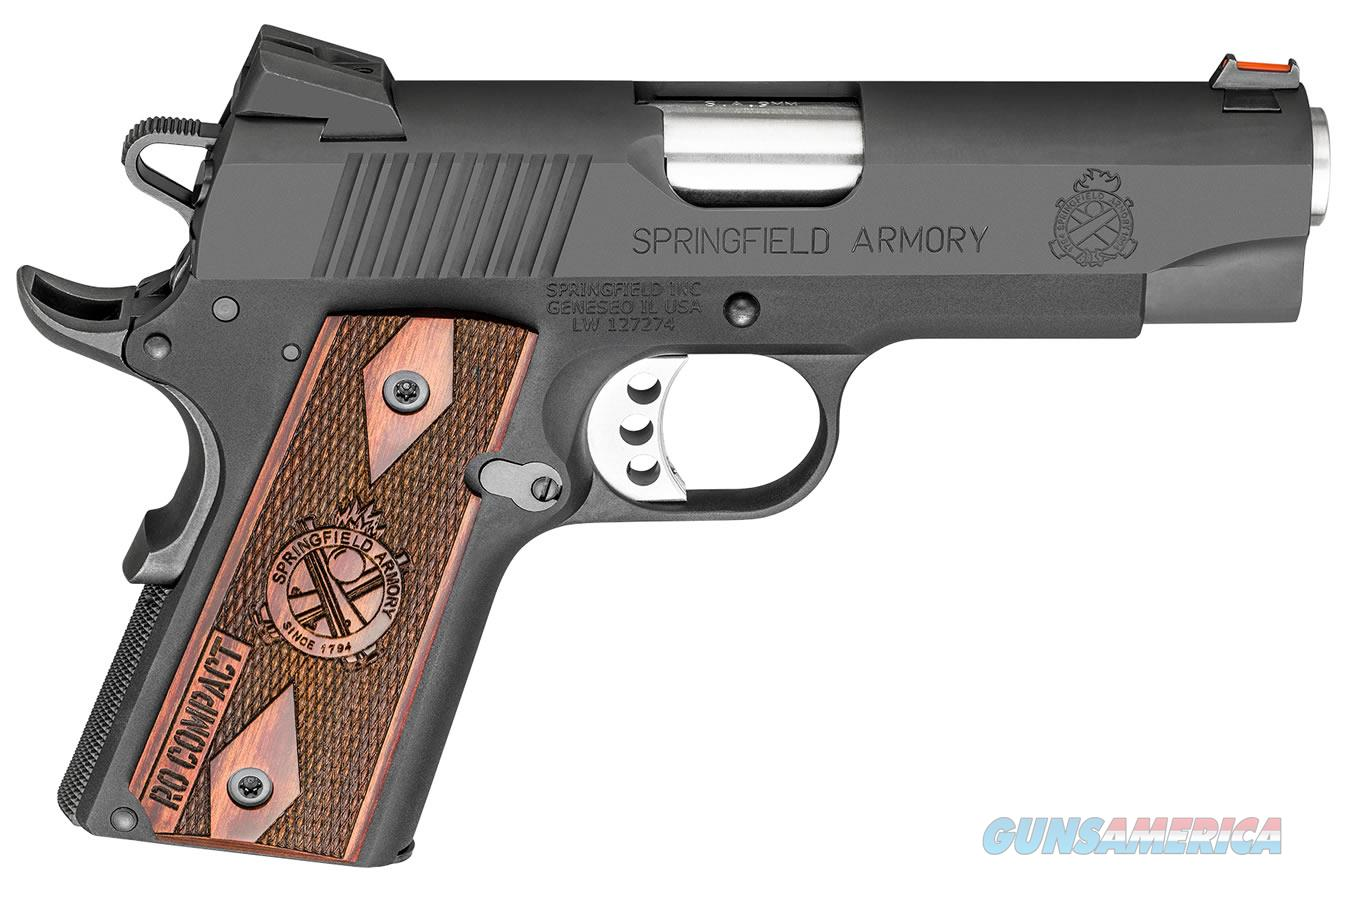 "Springfield 1911 Range Officer Compact 9mm 4"" 8Rds PI9125L   Guns > Pistols > Springfield Armory Pistols > 1911 Type"